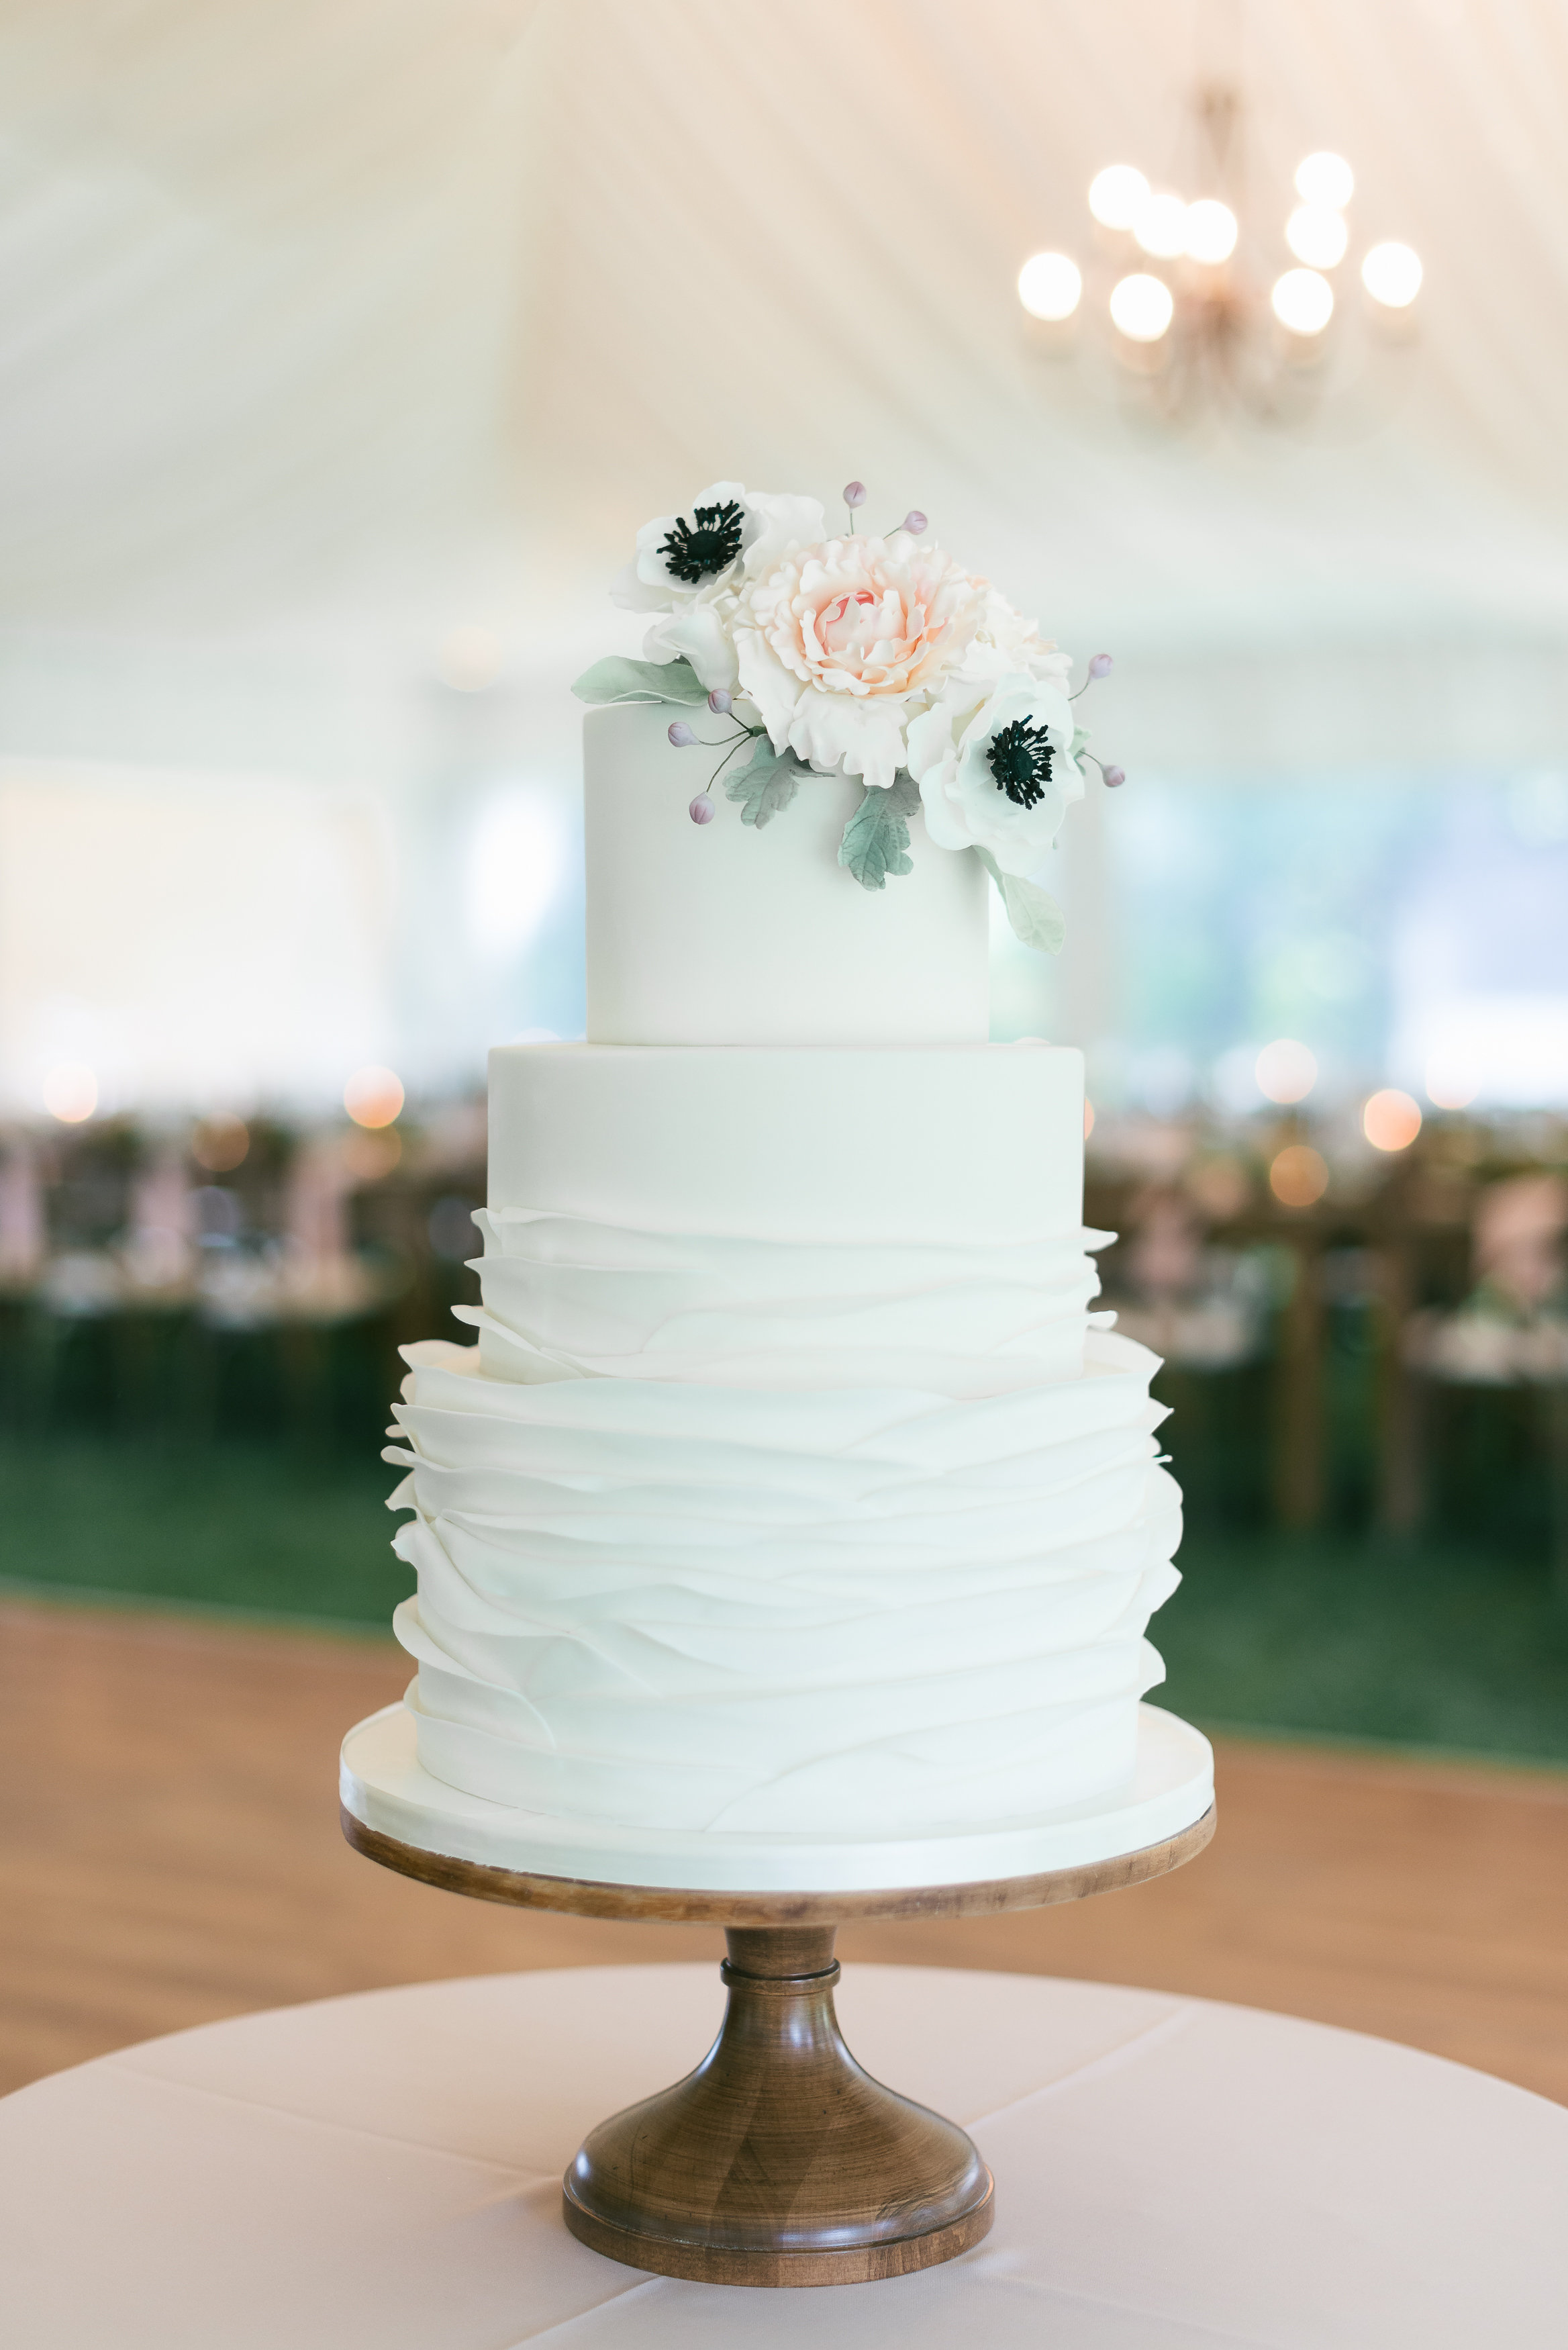 Amy Beck Cake Design | Wedding cakes | PartySlate